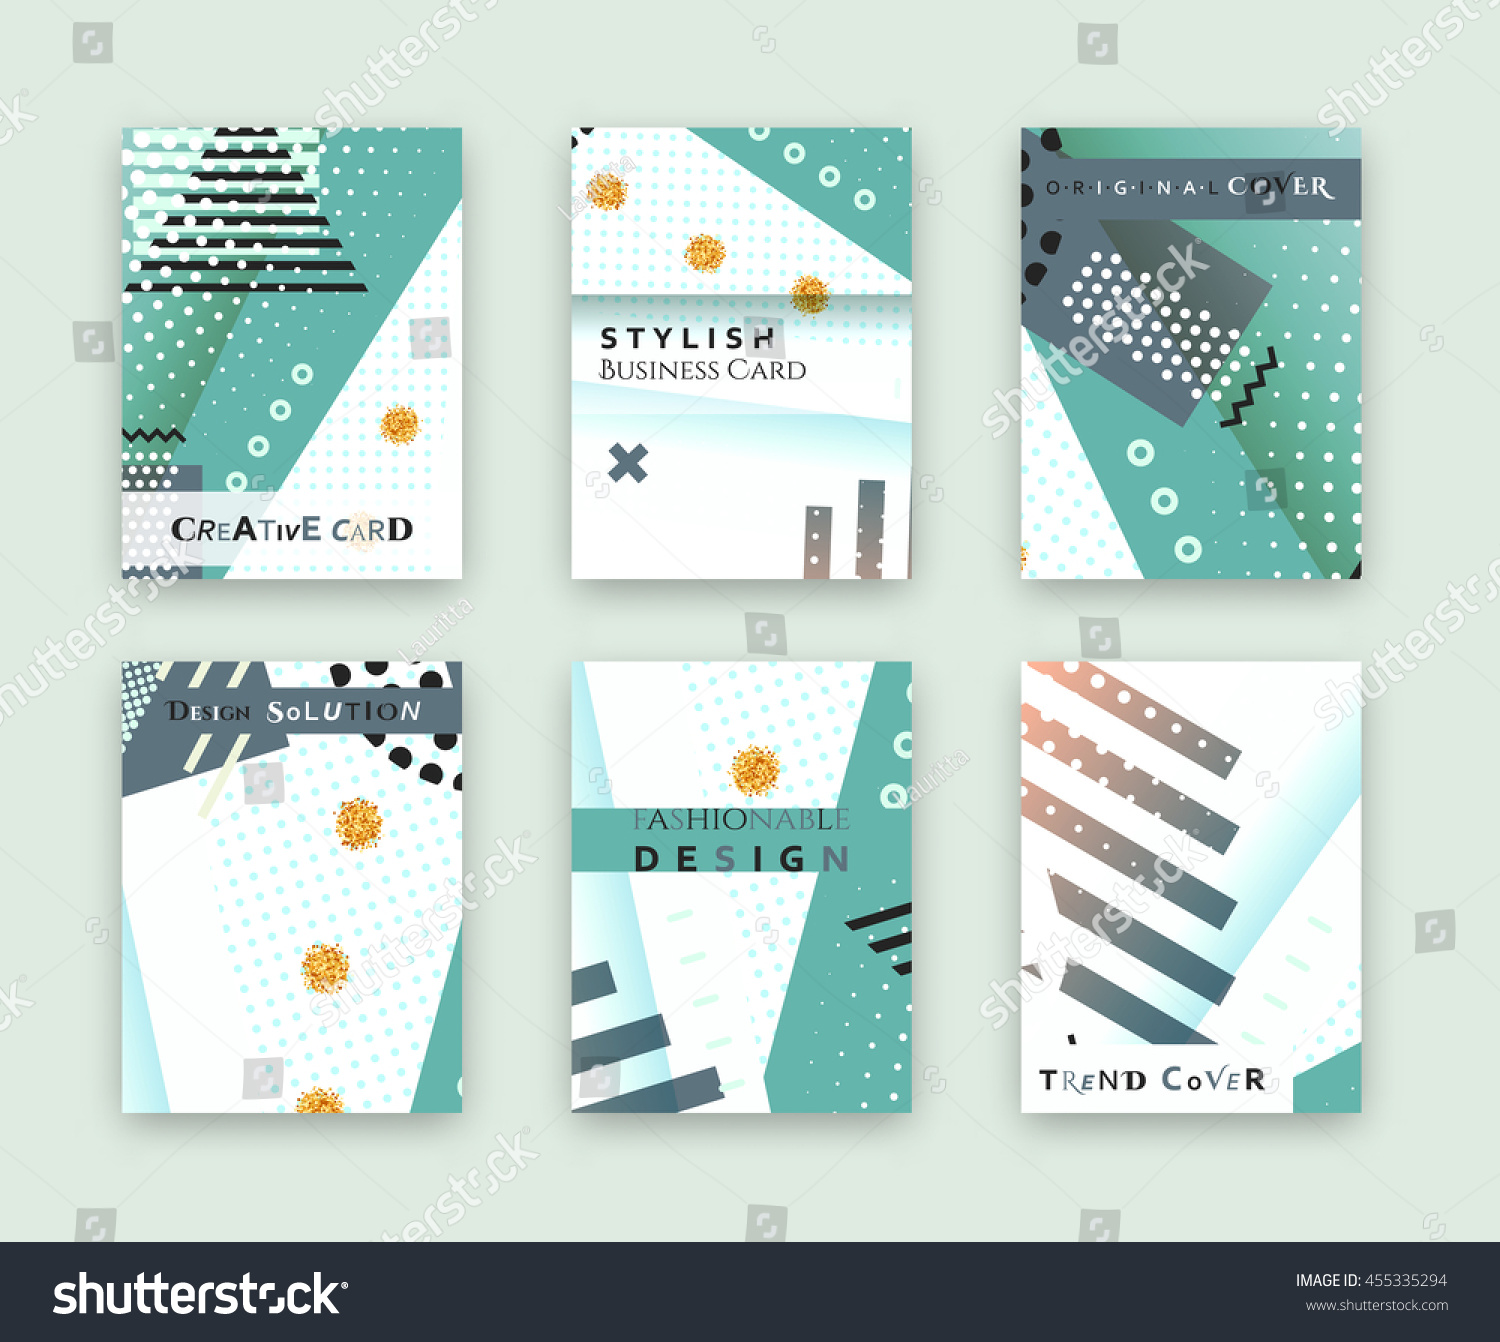 Fashionable original cover stylish business card stock vector stylish business card design template bright solution creative frame surface magicingreecefo Gallery